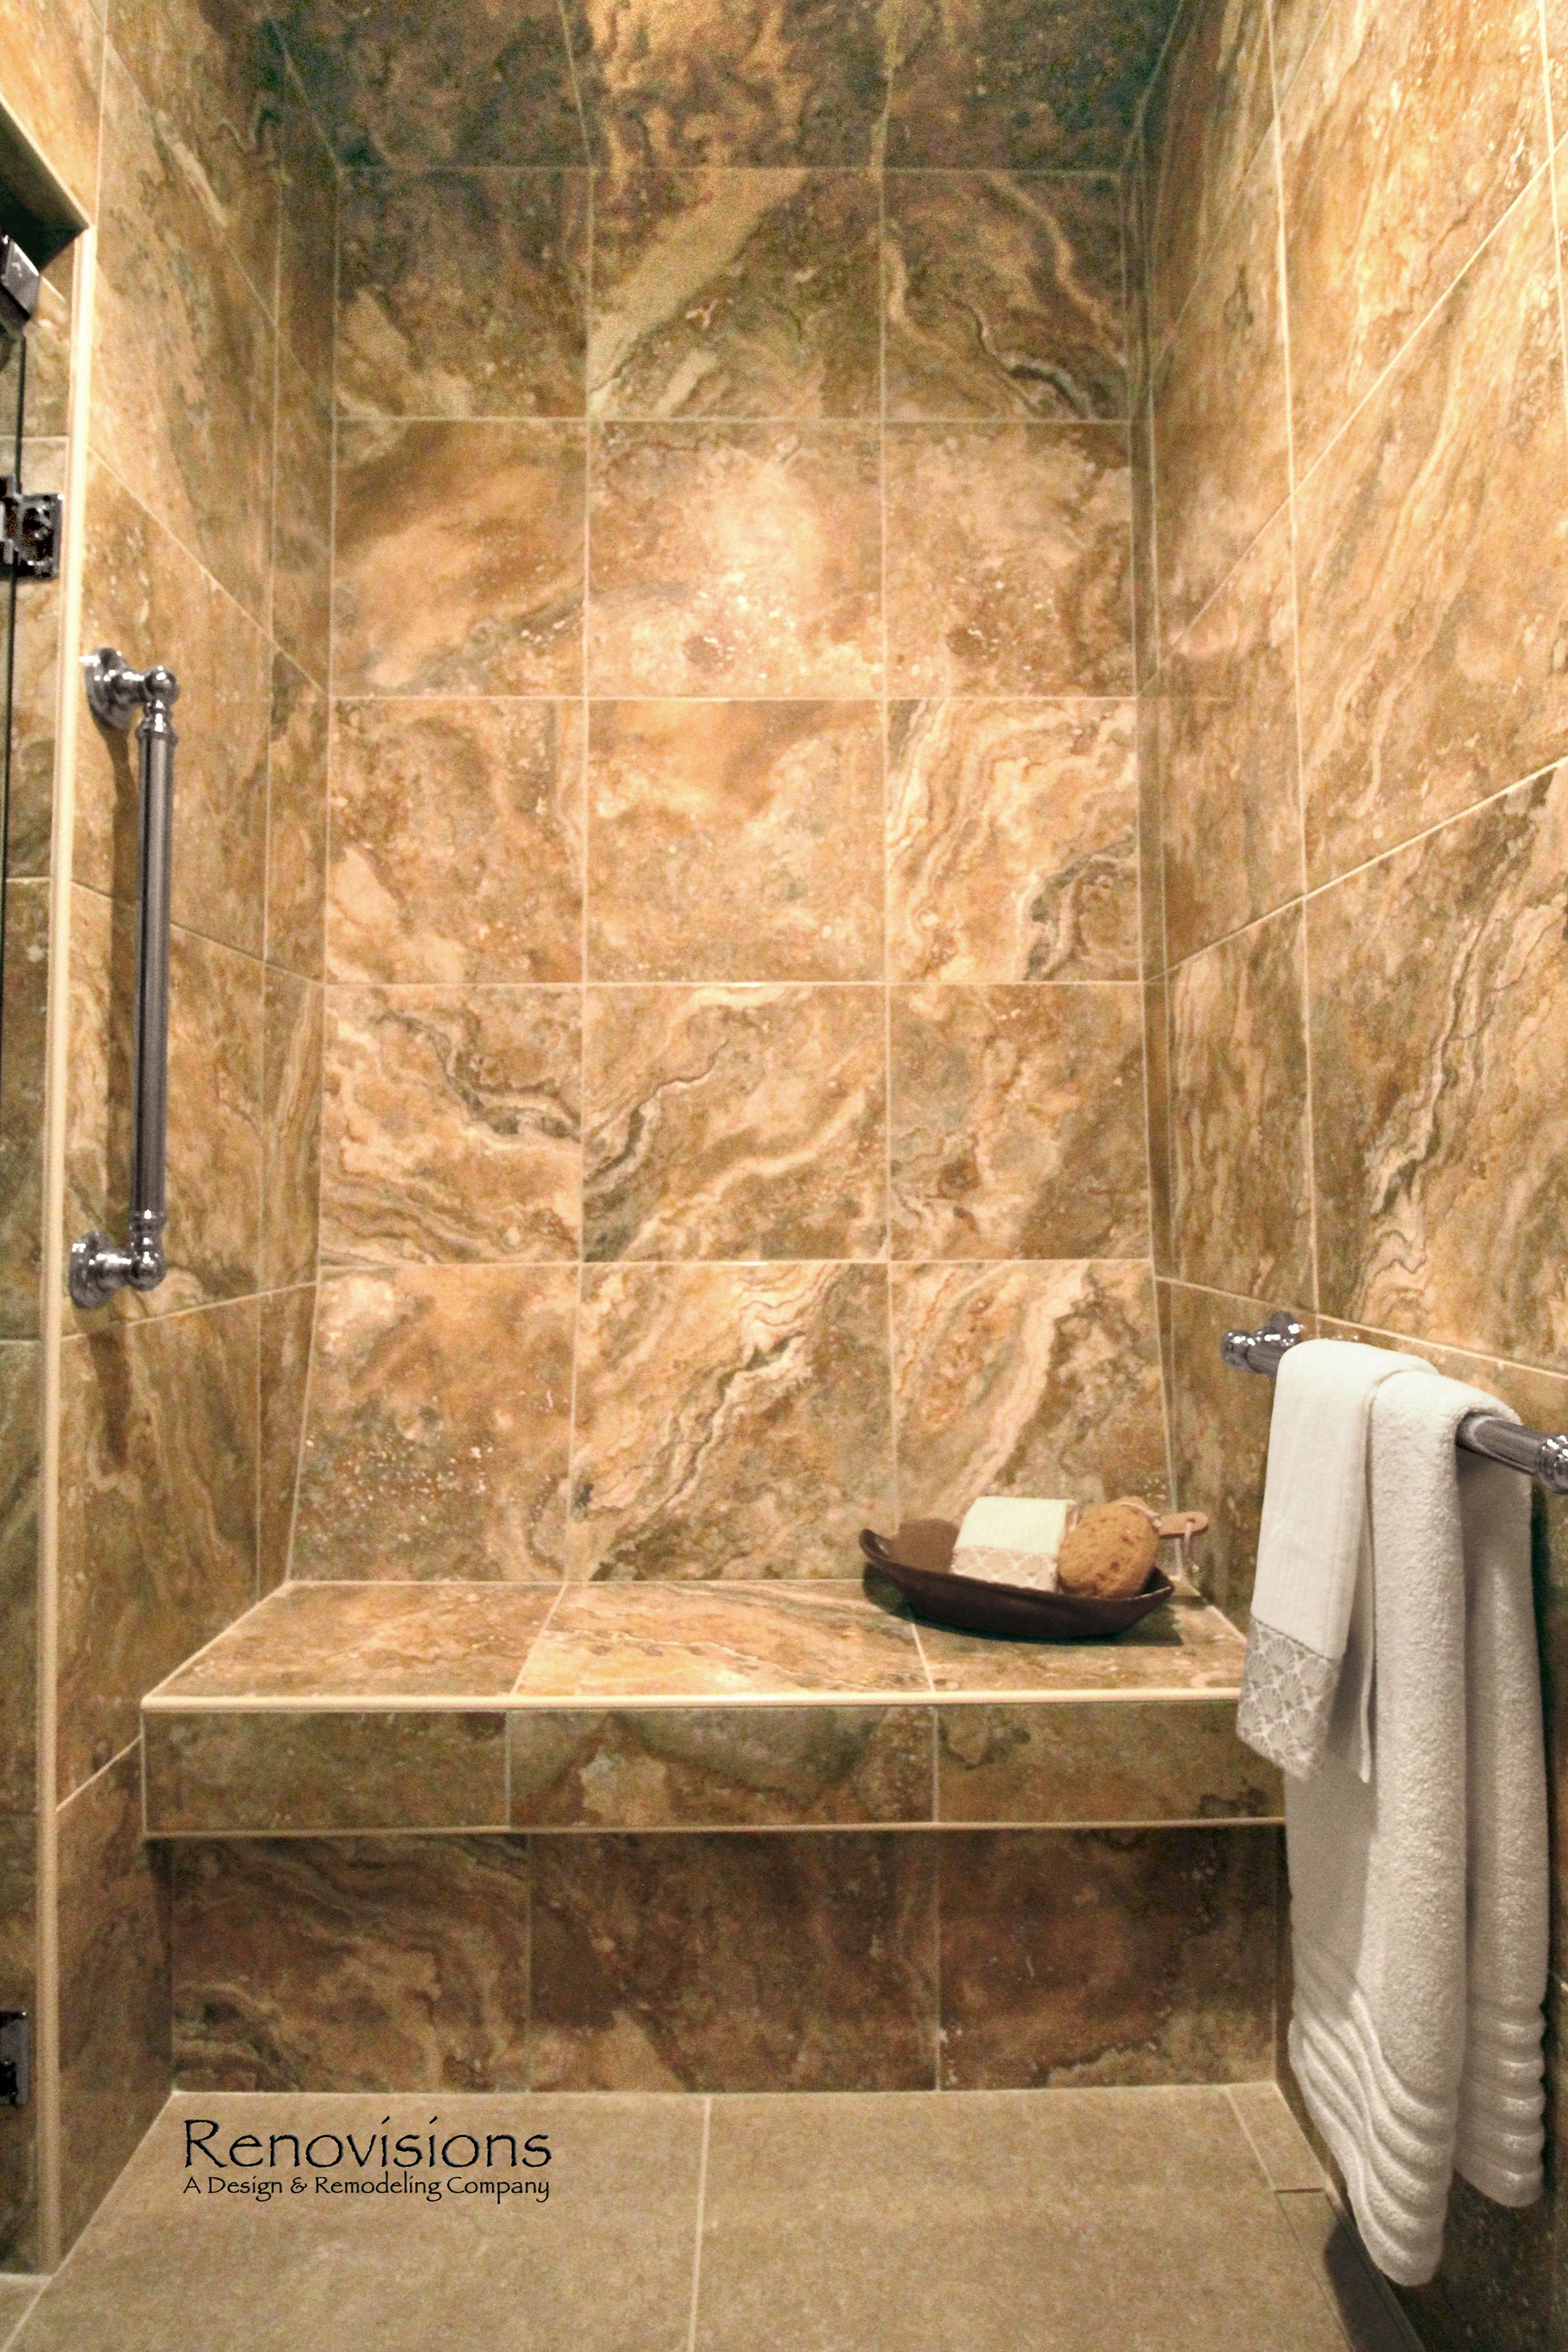 Master bathroom remodel by Renovisions Tile shower bench seat